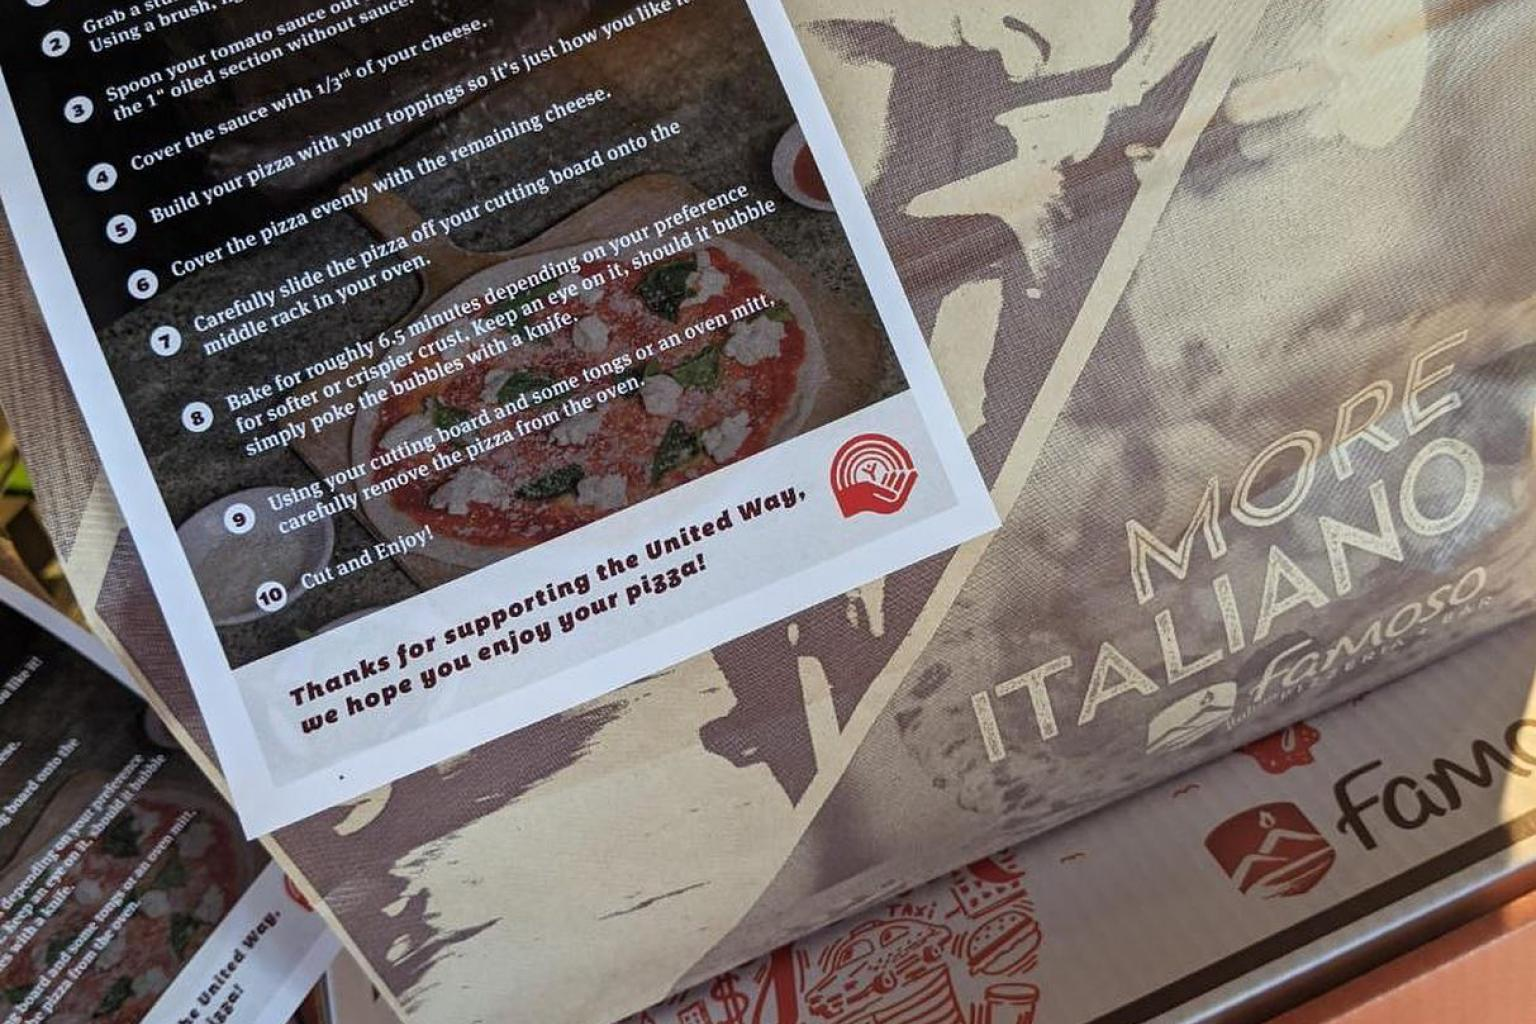 A stack of Famoso pizza boxes with a Take And Bake instructions sheet on top